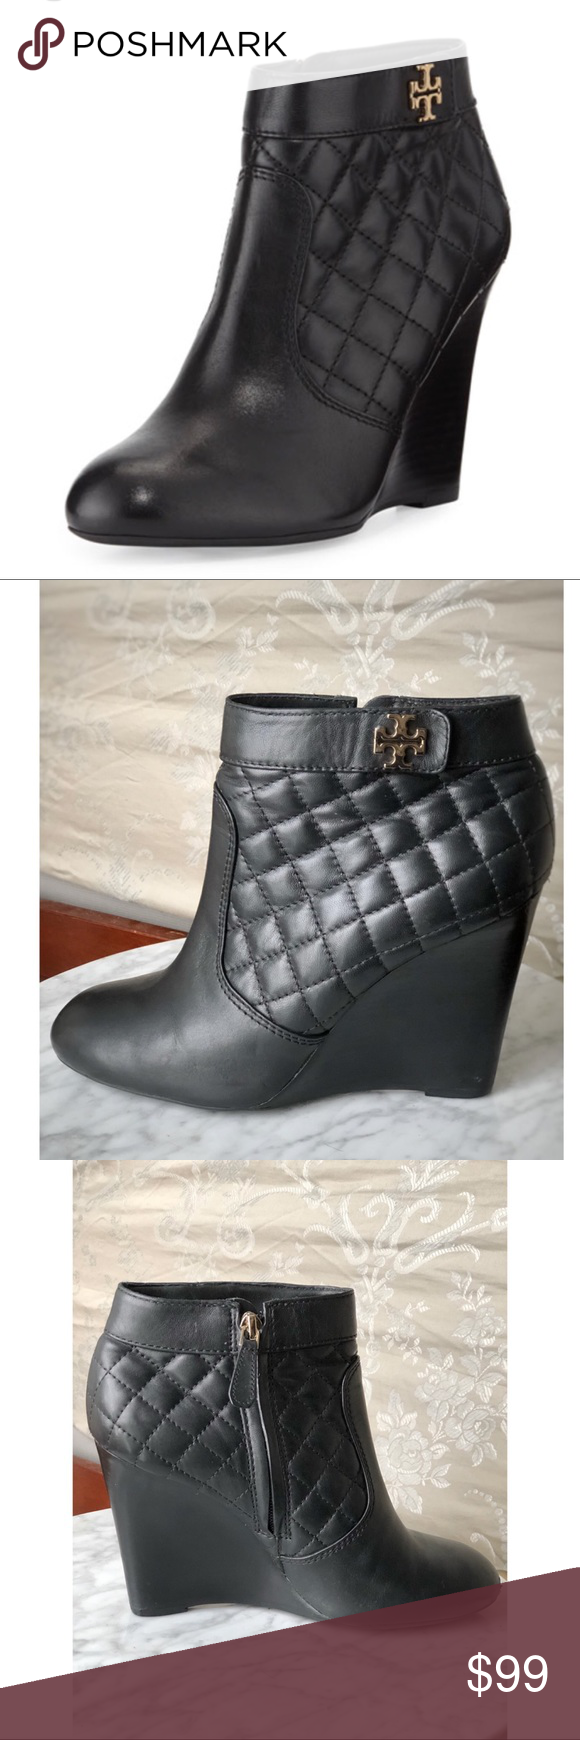 "de91e470e16 Tory Burch Leila Quilted Black Ankle Boot Size 8.5 Tory Burch- Leila Boots  Size  EU 38.5 US 8.5 Color  Black Material  Leather Heel  4"" Made In   Brazil ..."